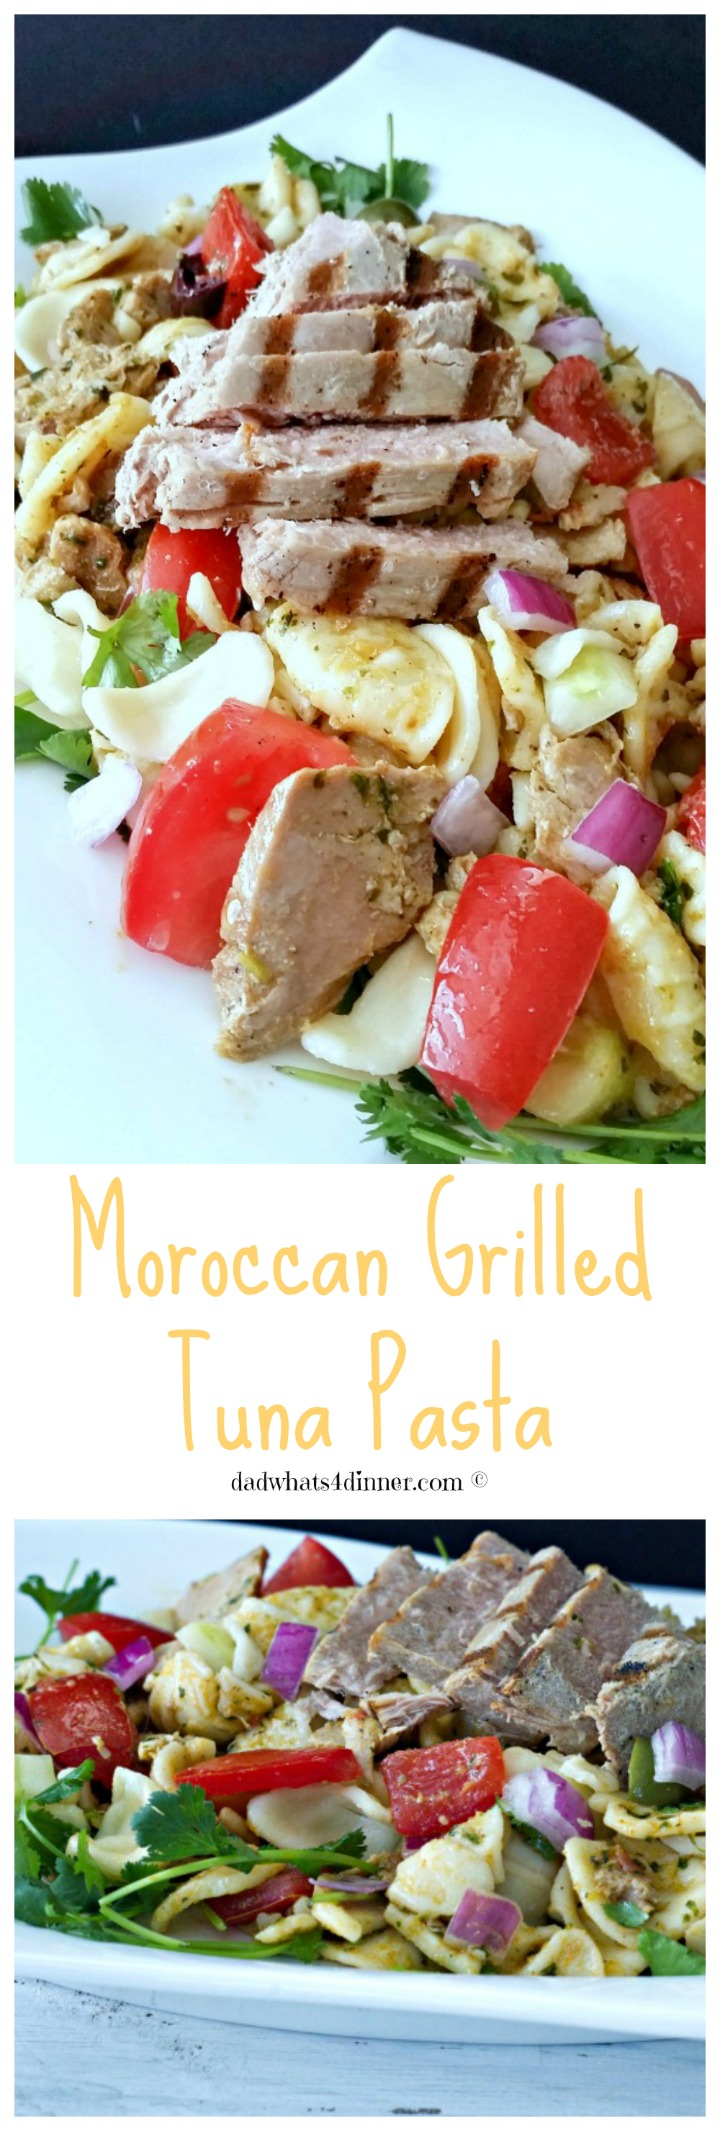 My Moroccan Grilled Tuna Pasta, loaded bold flavors, is a wonderful fresh dinner idea for spring and summer.